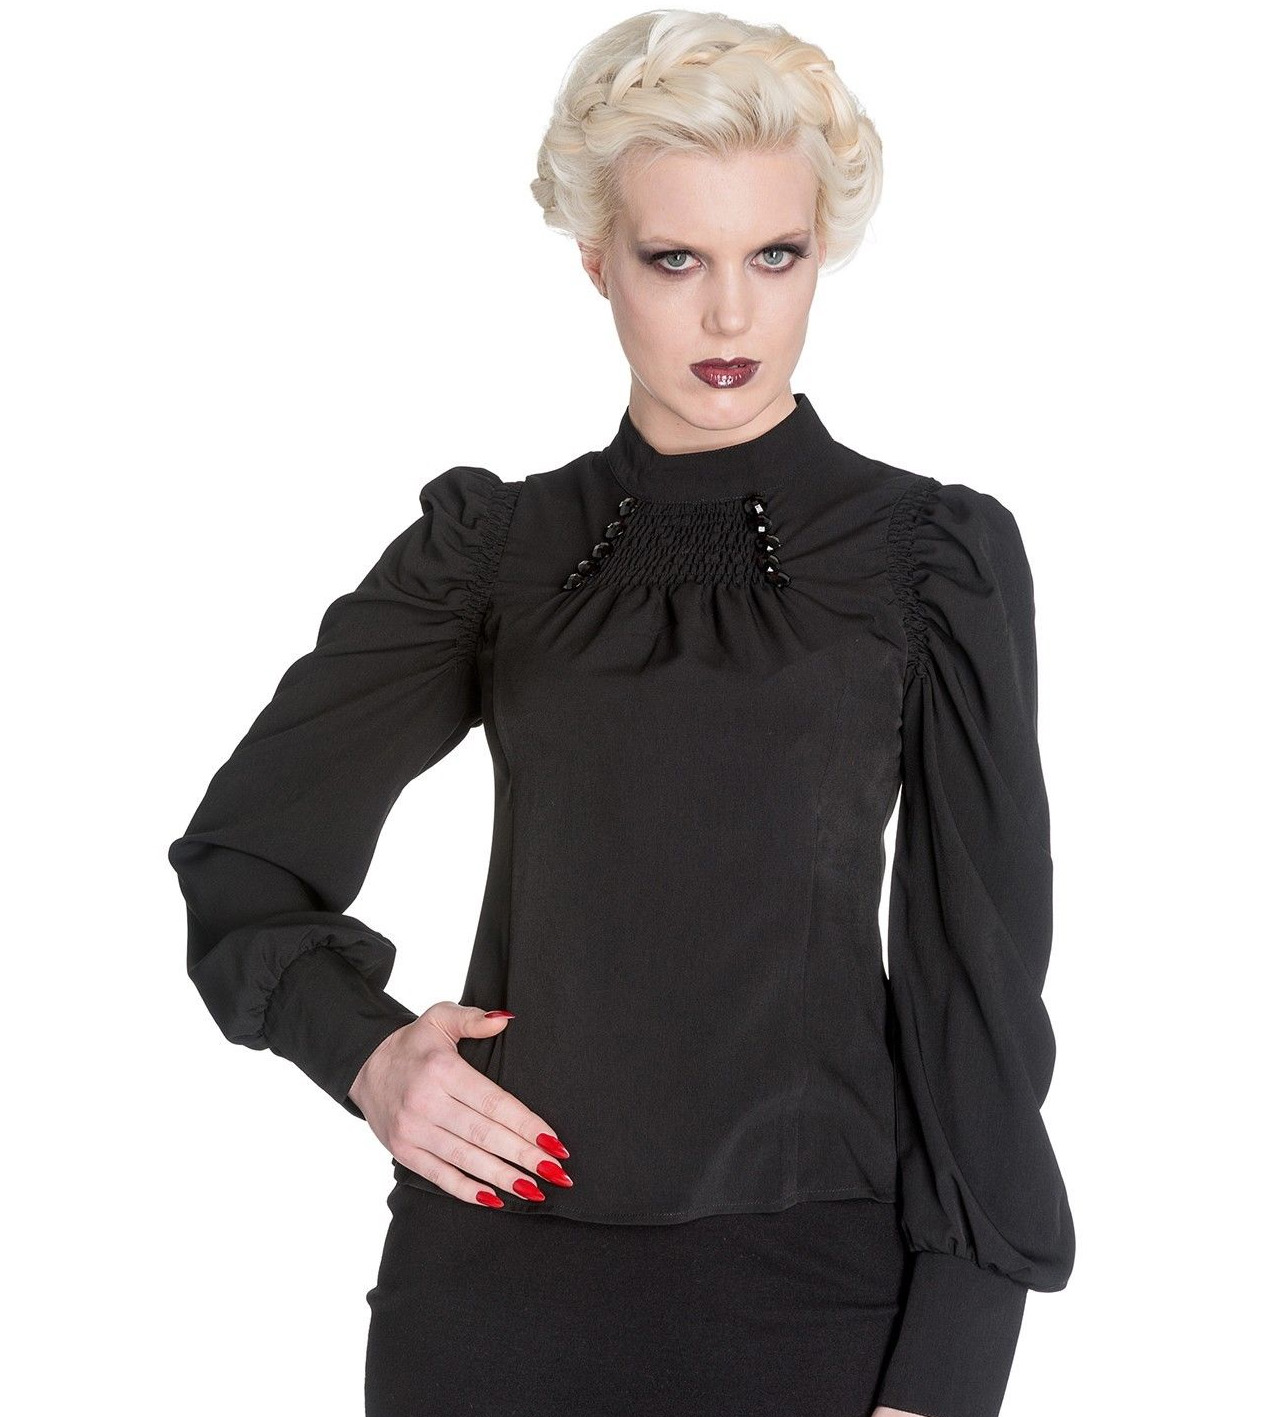 Hell-Bunny-Spin-Doctor-Vampire-Gothic-Shirt-Top-MELROSE-Blouse-All-Sizes thumbnail 7